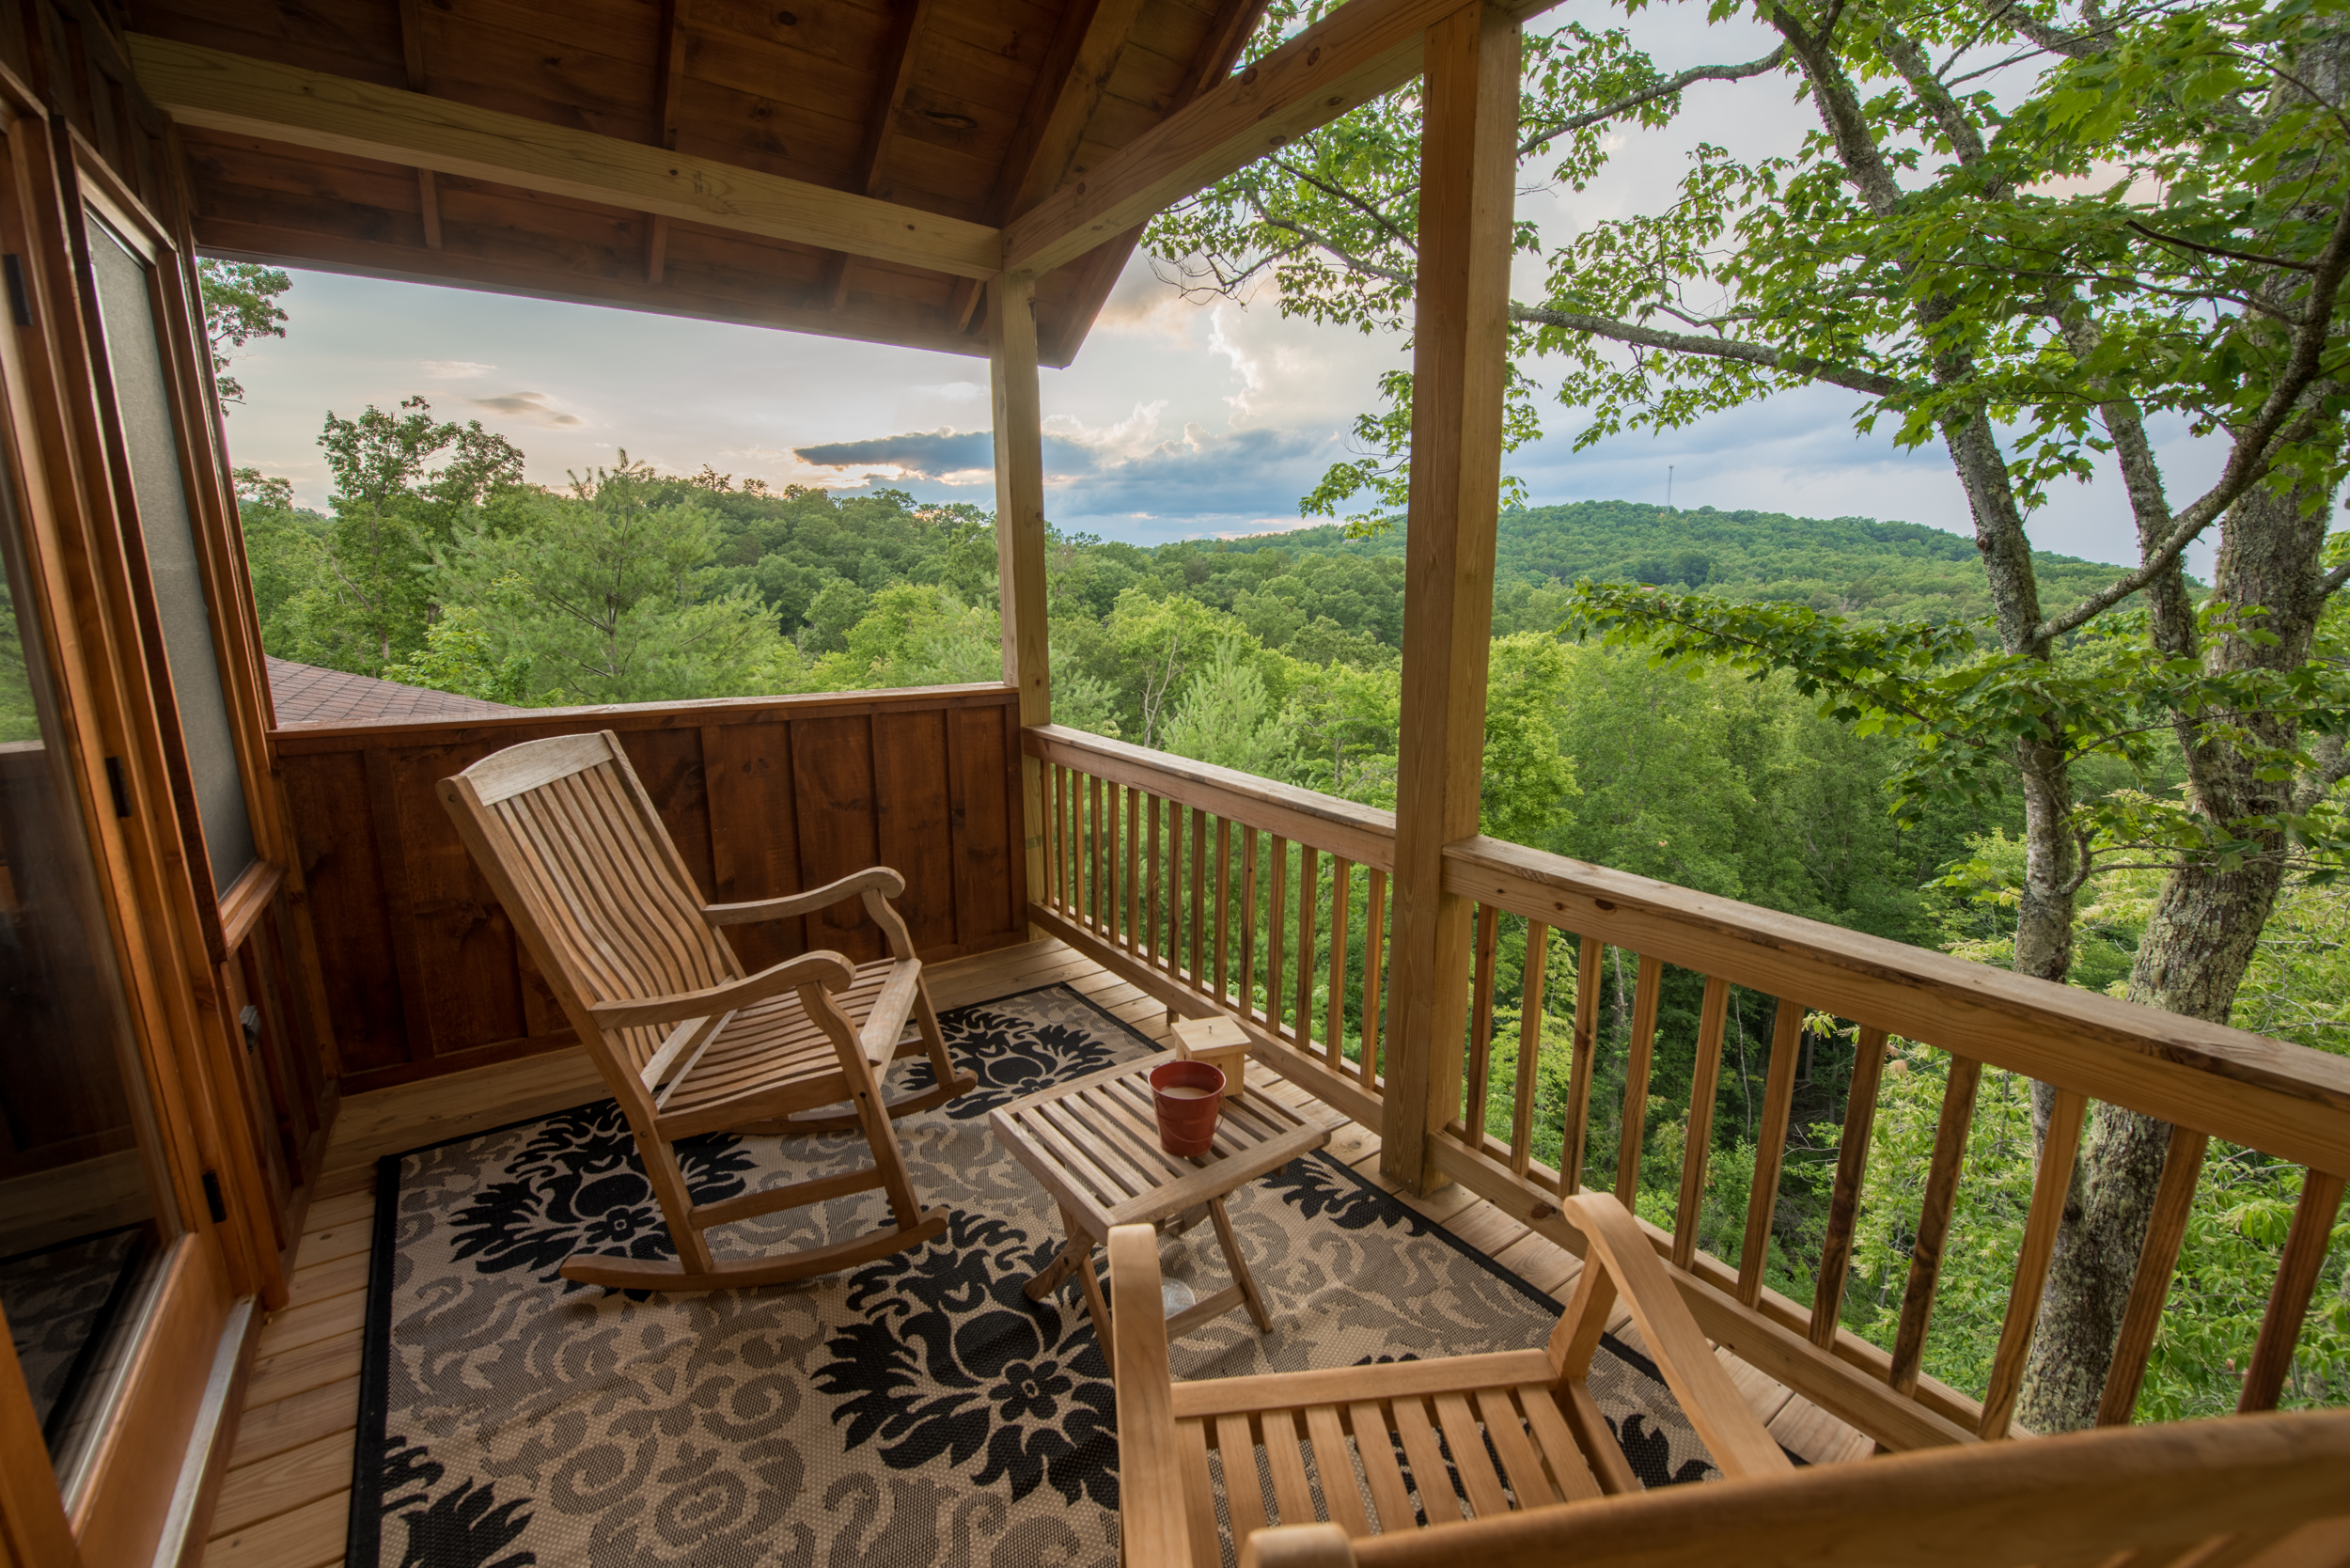 Master bedroom deck view